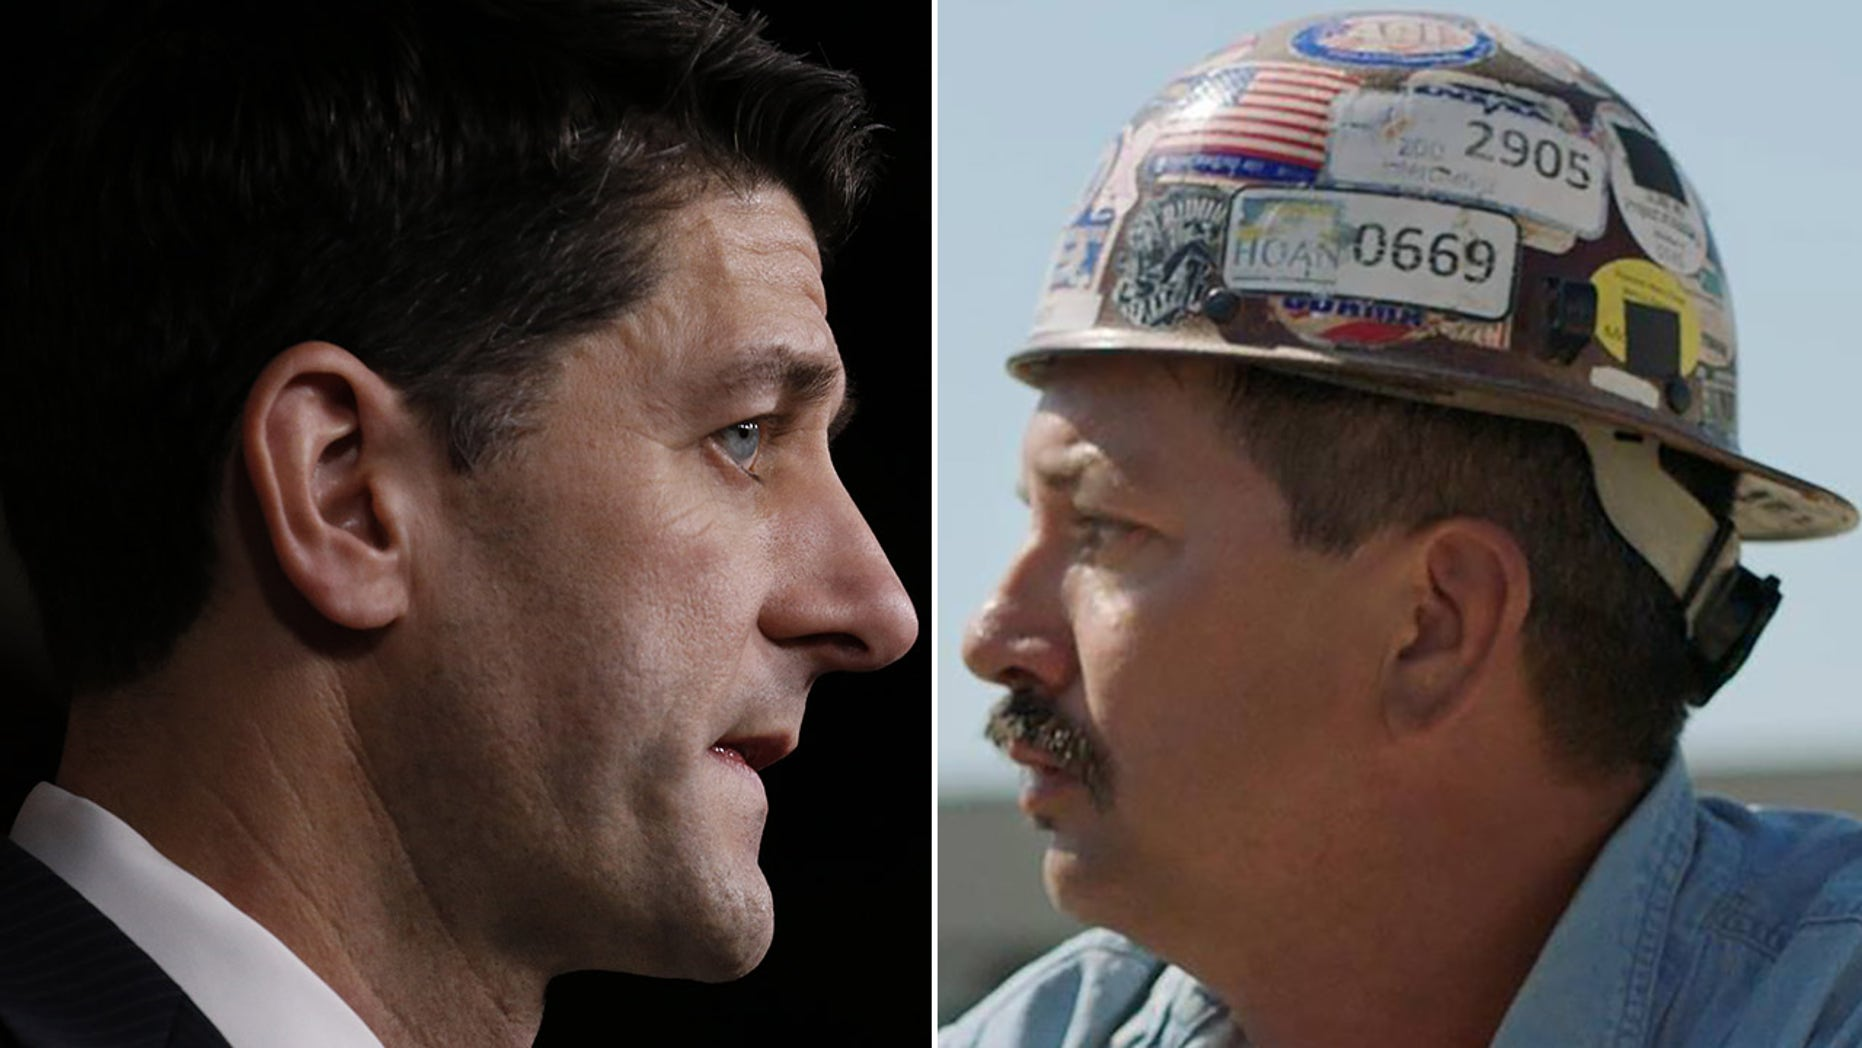 House Speaker Paul Ryan, left, is facing a challenge for his Wisconsin congressional seat from Democrat Randy Bryce.